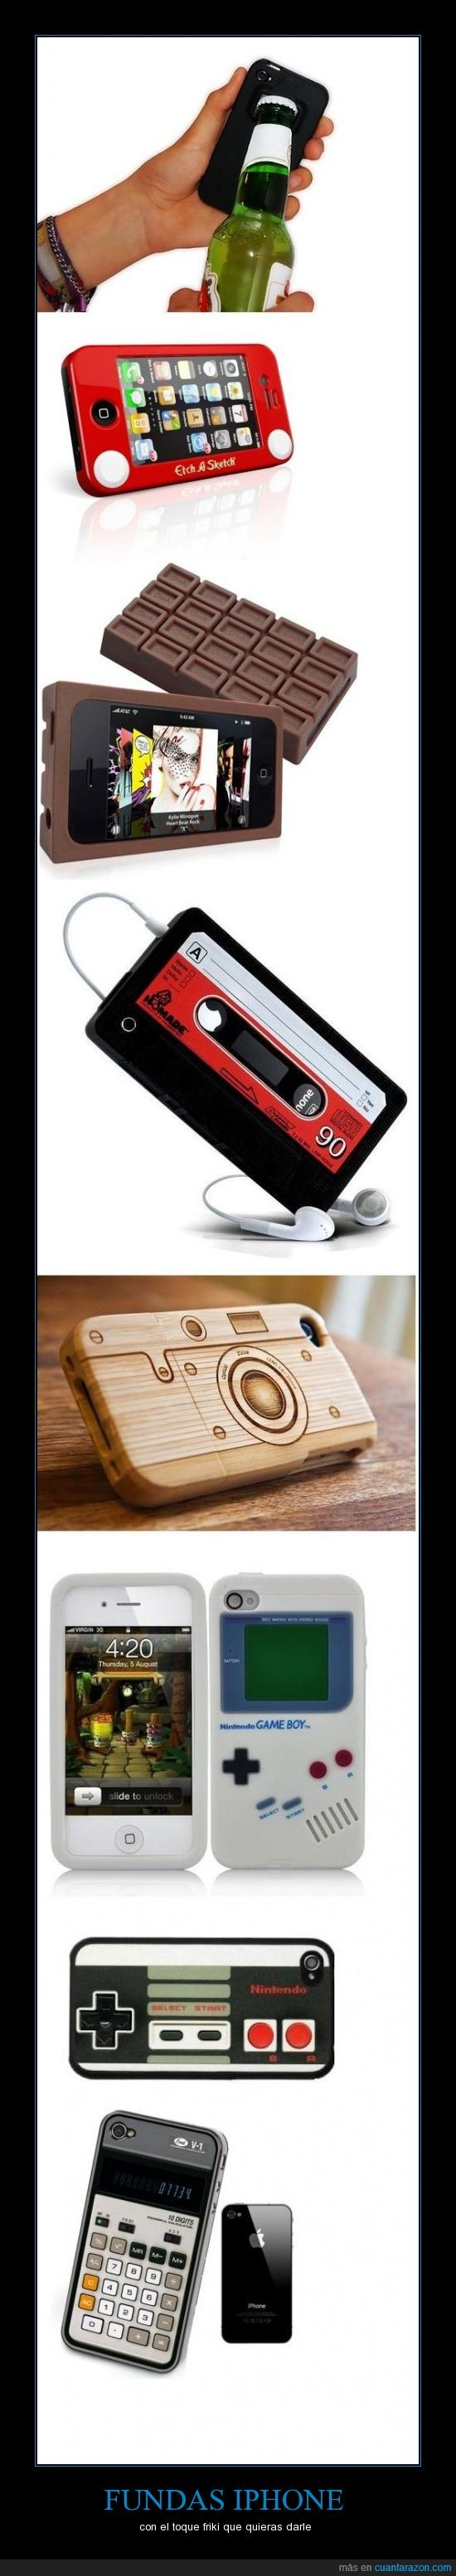 calculadora,camara,chocolate,fundas,iphone,nintendo,rous,sketch